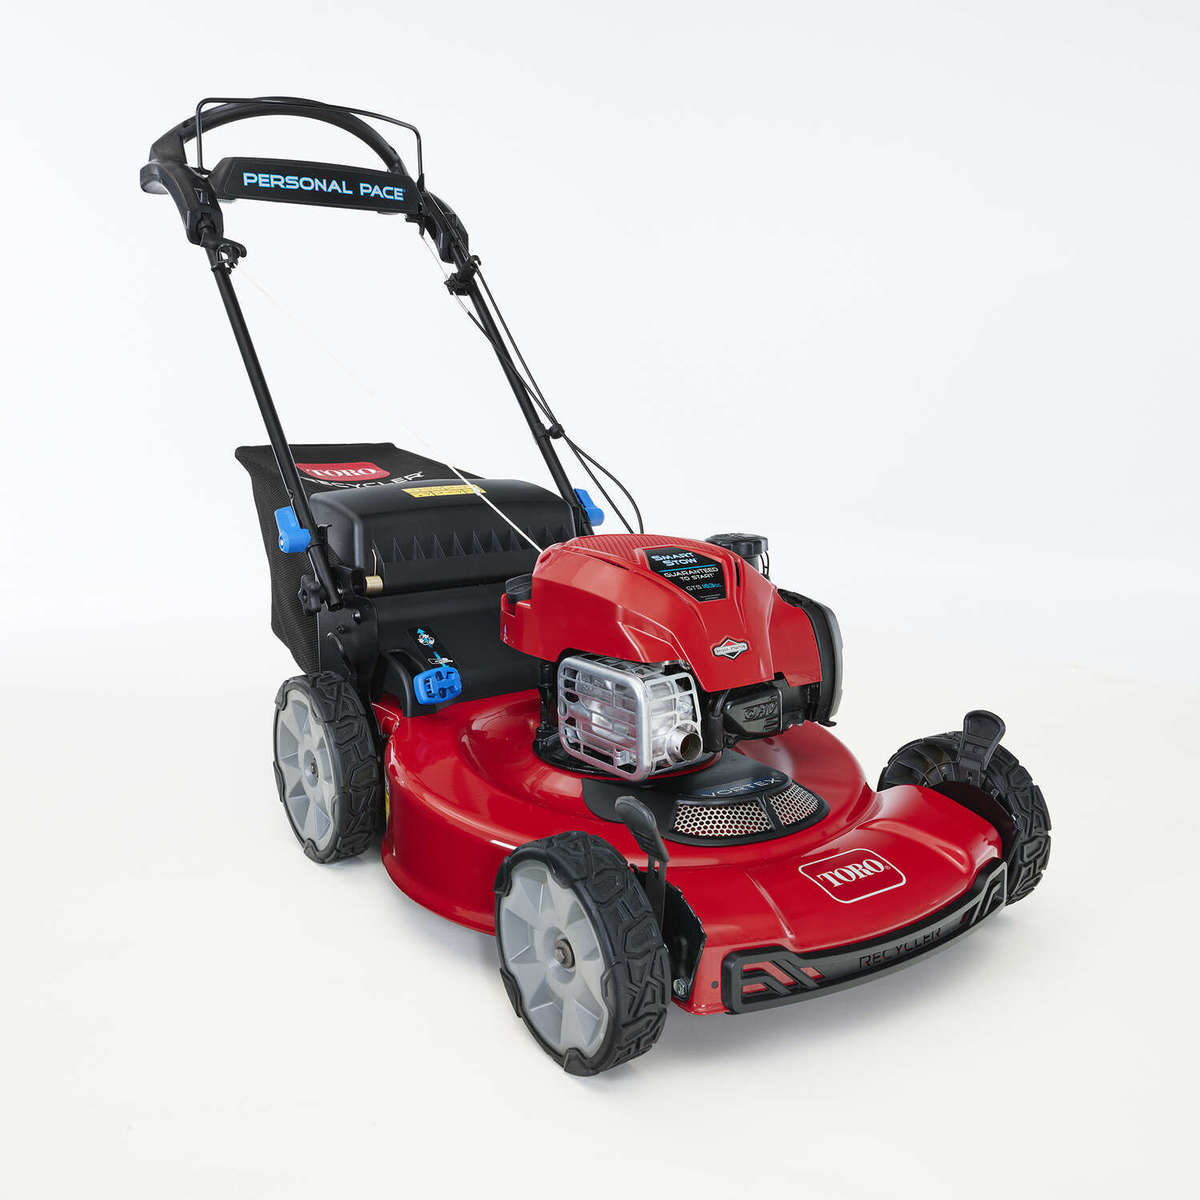 Toro® Recycler® SmartStow® Personal Pace® Self-Propelled Mower thumbnail